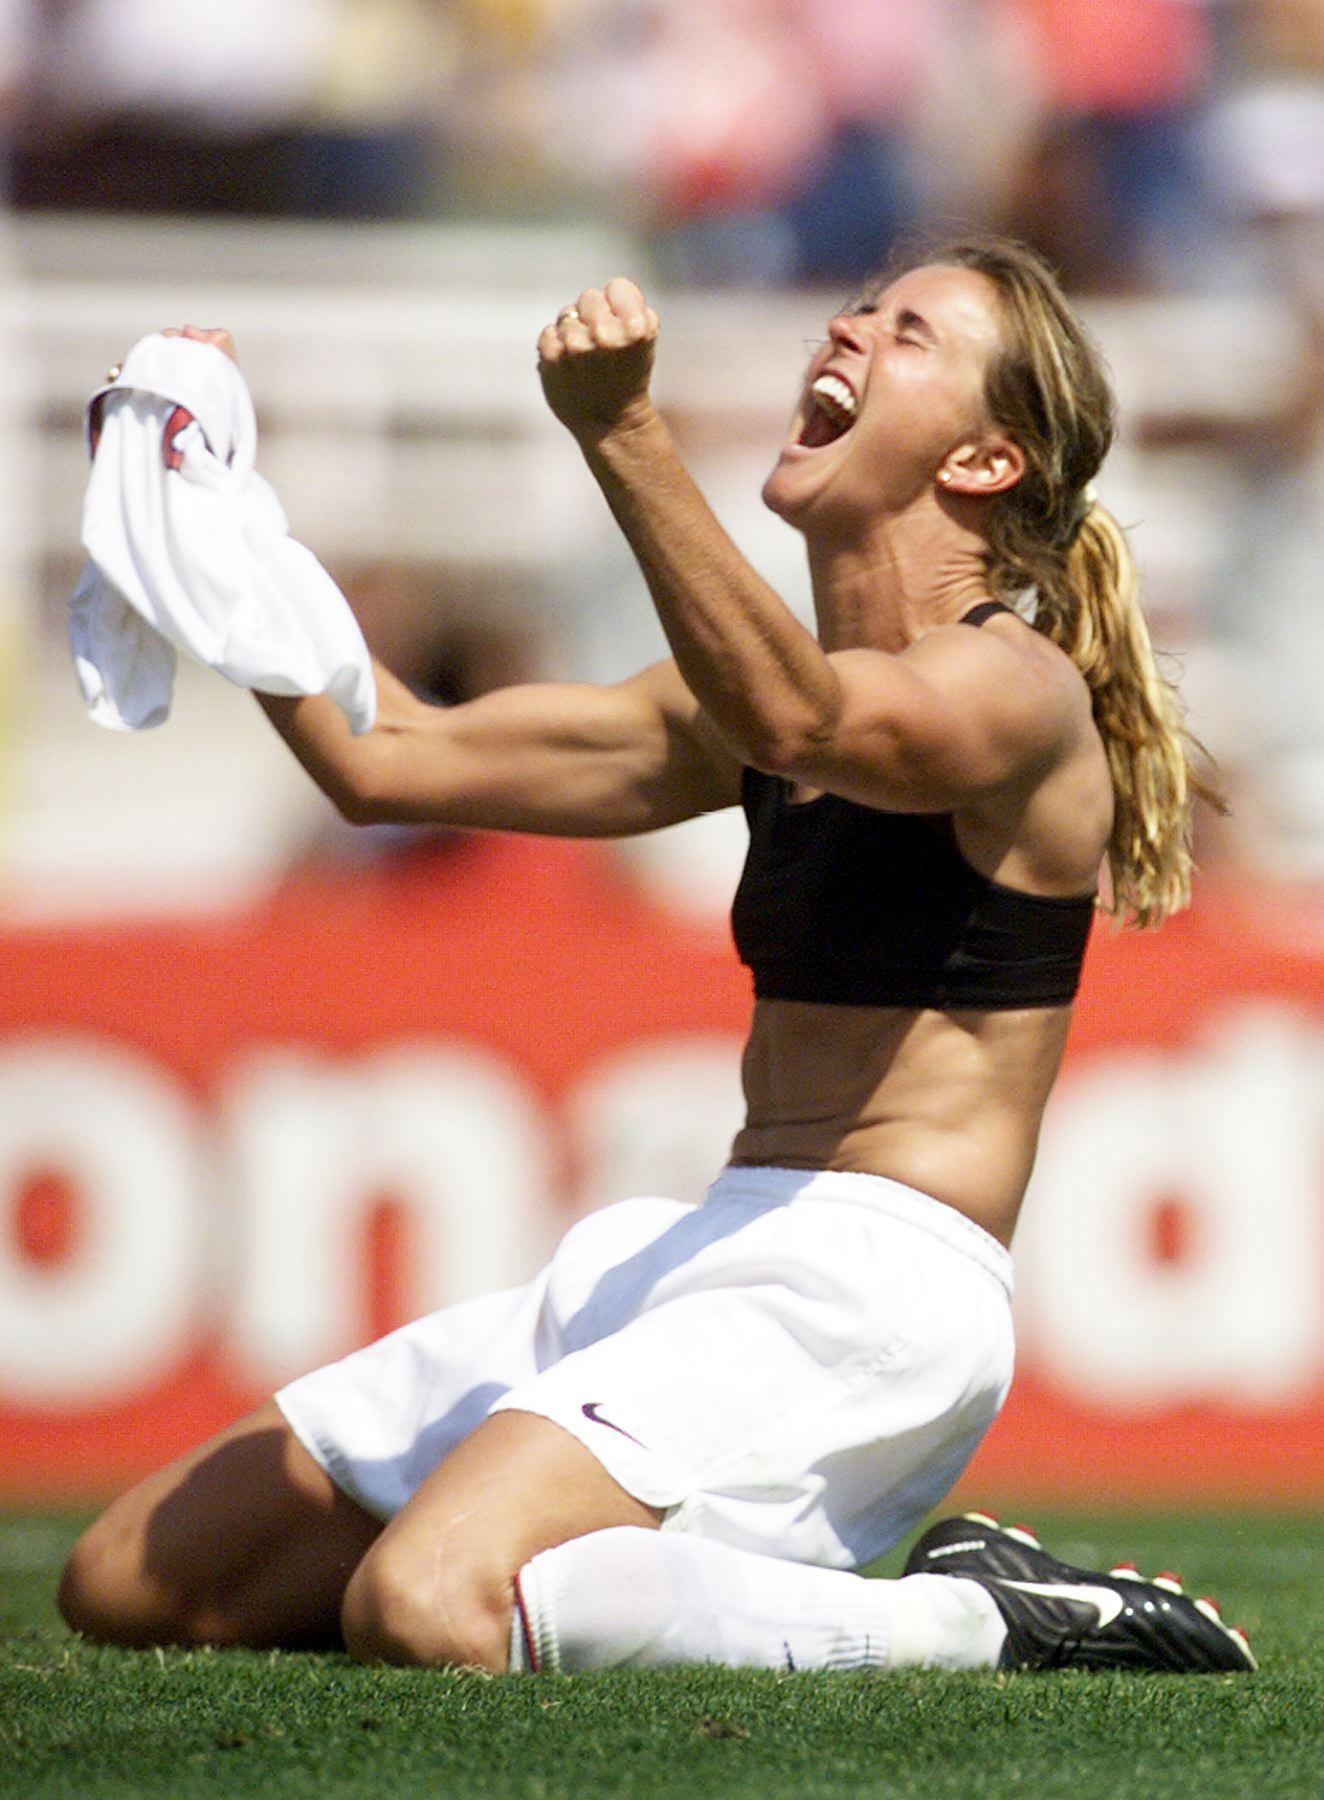 Brandi Chastain celebrates after kicking the winning penalty shot to win the 1999 Women's World Cup final against China on July 10, 1999 at the Rose Bowl in Pasadena.